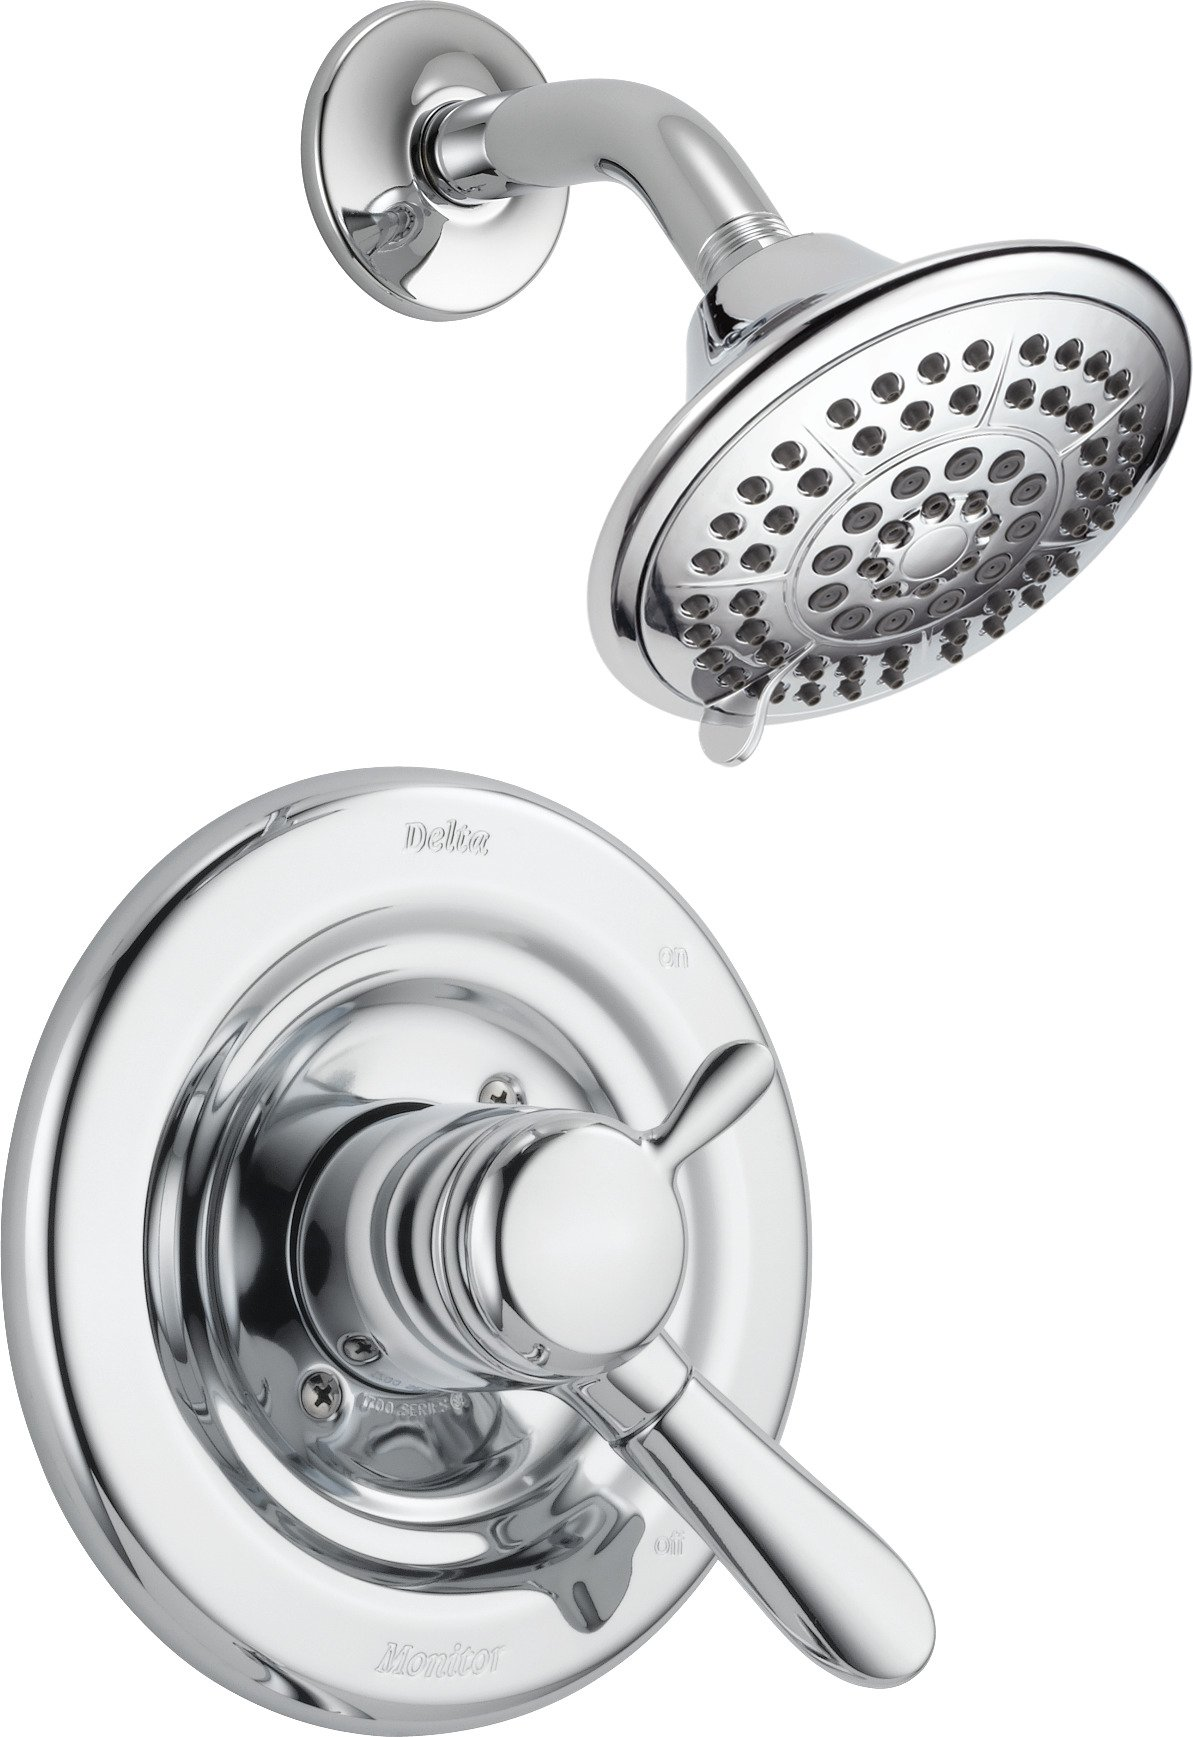 Delta Lahara 17 Series Dual-Function Shower Trim Kit with 5-Spray Touch Clean Shower Head, Chrome T17238 (Valve Not Included)